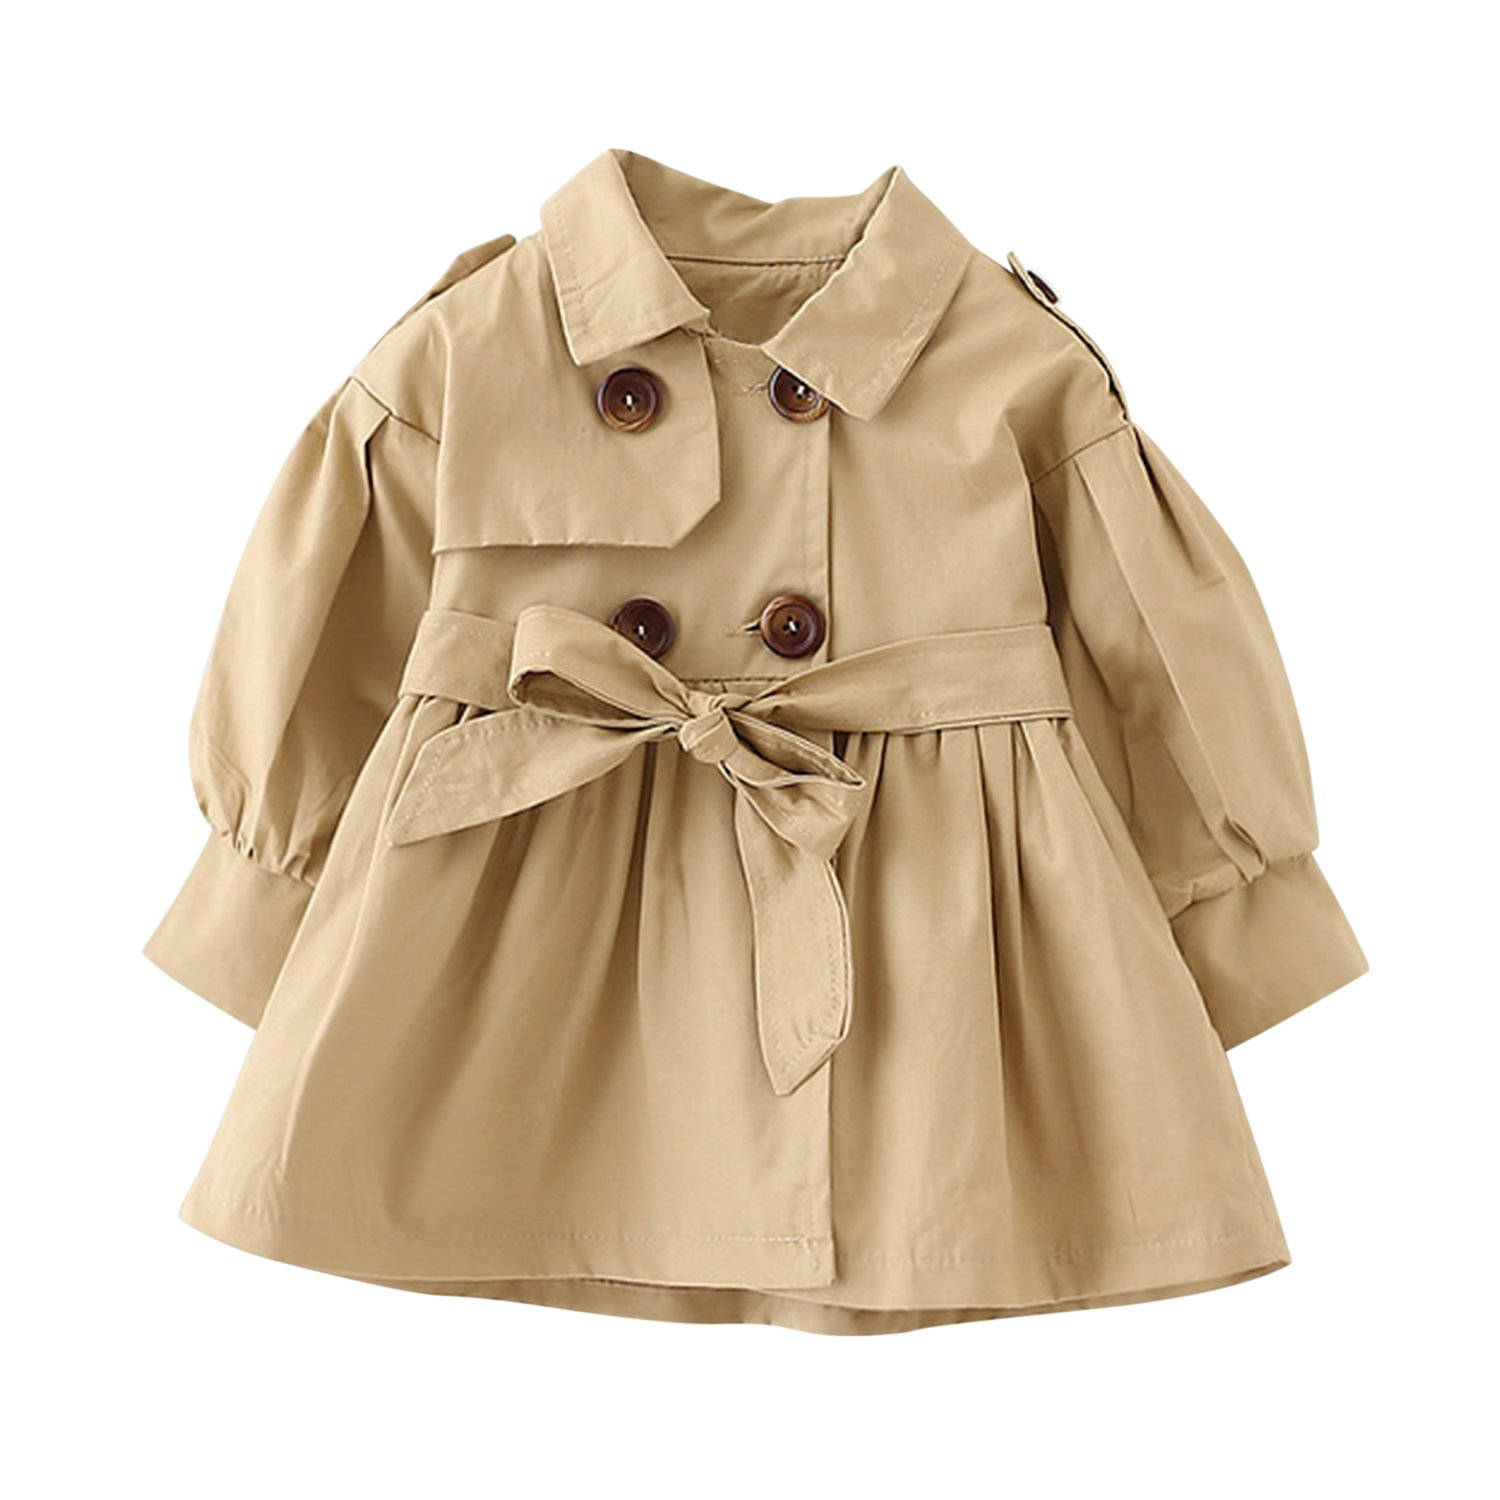 Baby Girls Trench Coat Jacket Dress with Belt Ruffle Waist Windbreaker Outwear Evelin LEE FAL0604